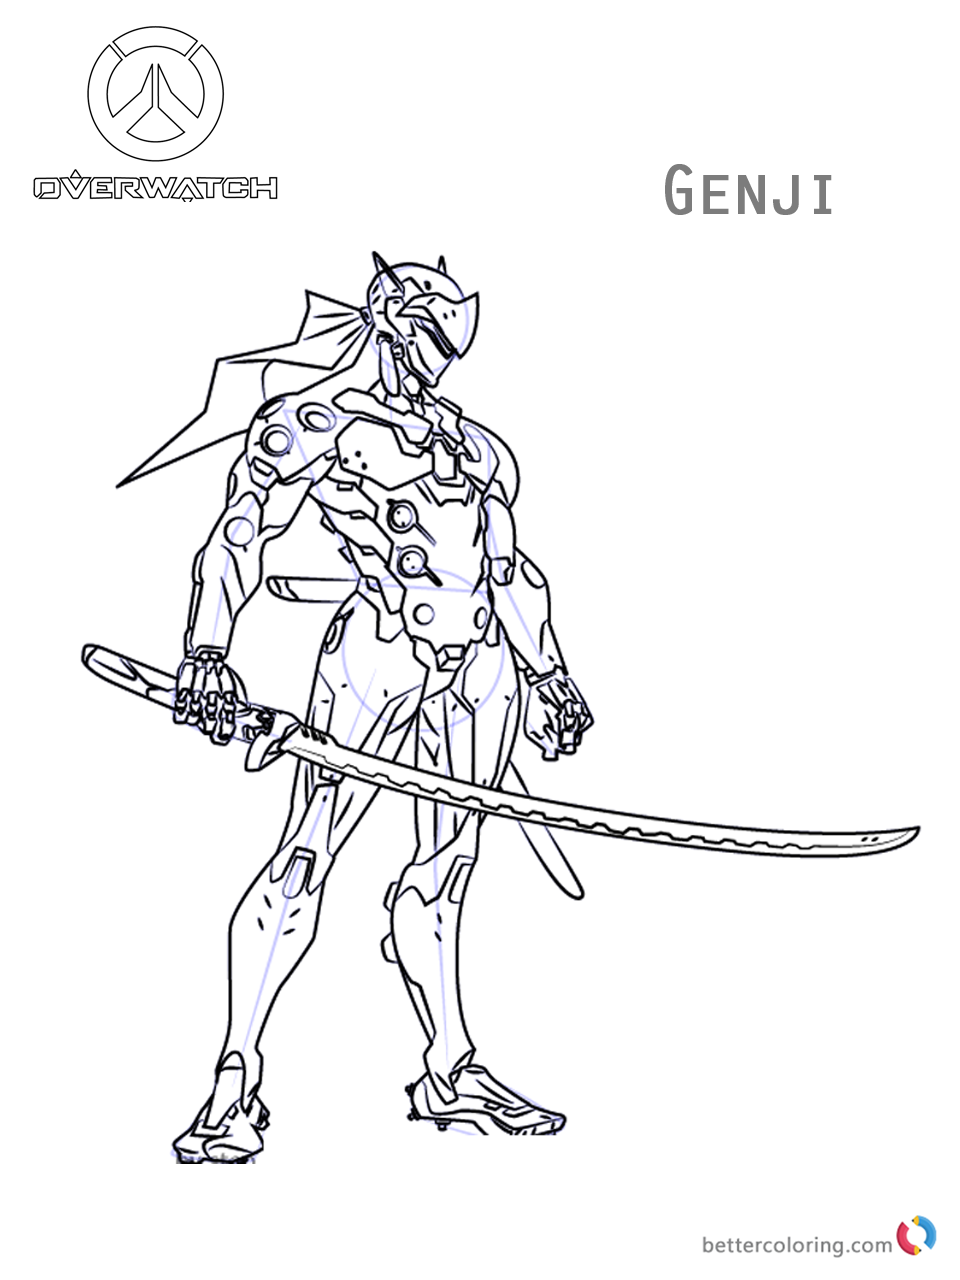 Genji From Overwatch Coloring Pages Free Printable